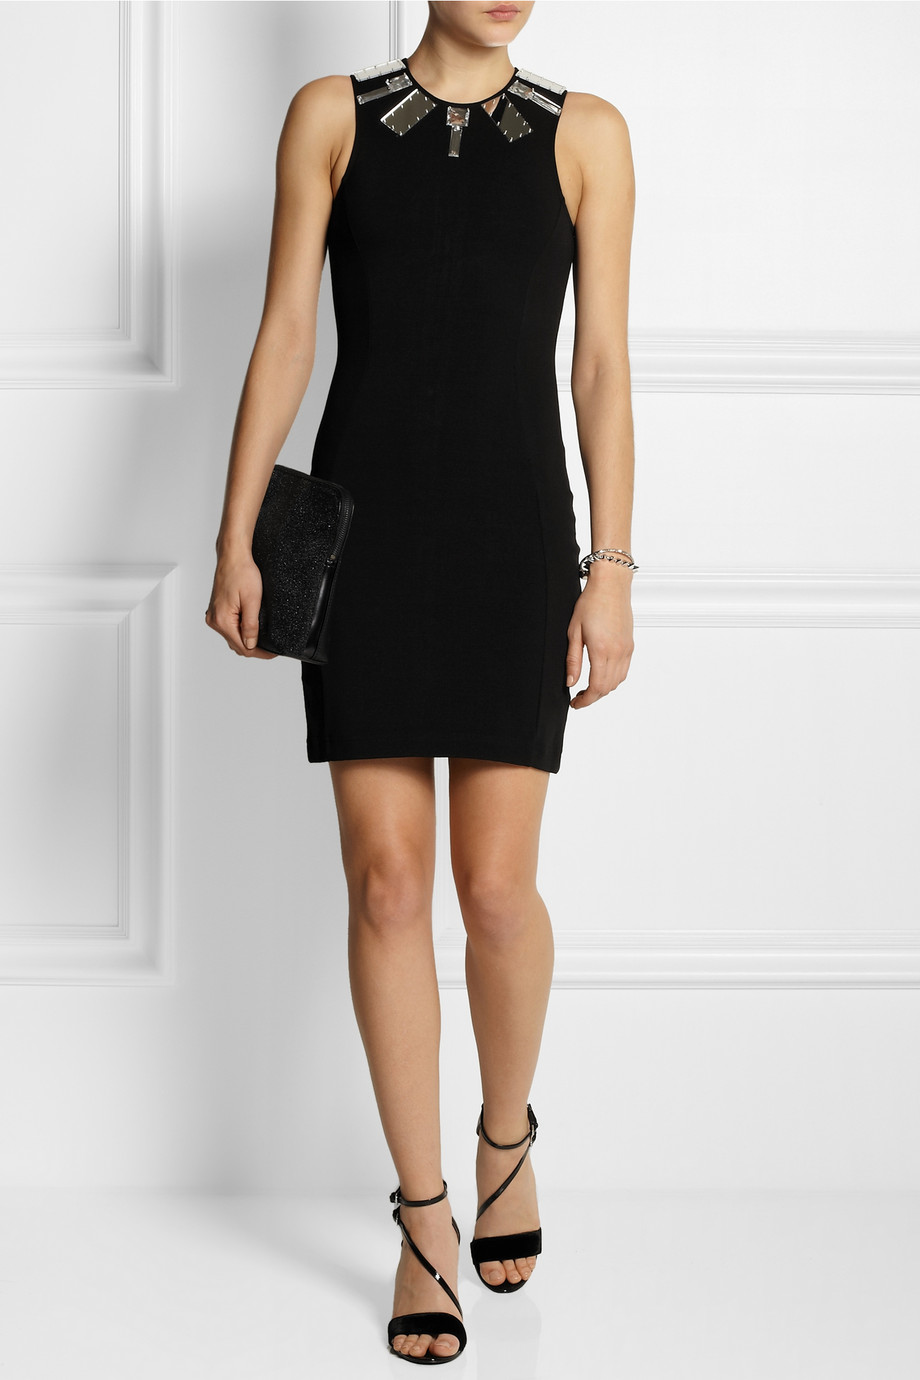 MARKUS LUPFER Mirror Embellished Stretch Jersey Mini Dress buy HERE